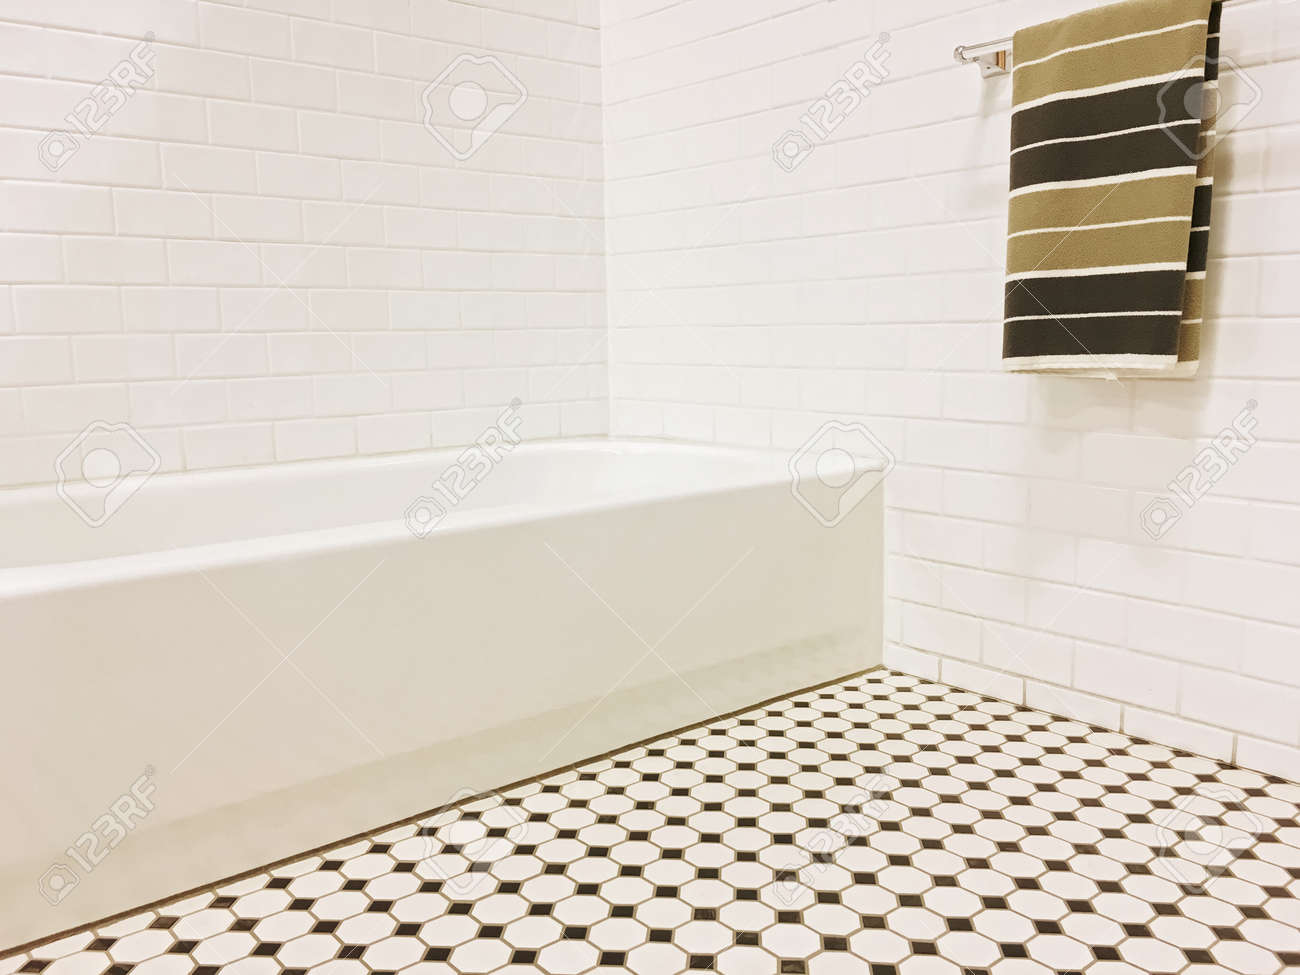 New Bathroom With Black And White Ceramic Tile Decor And A Striped ...